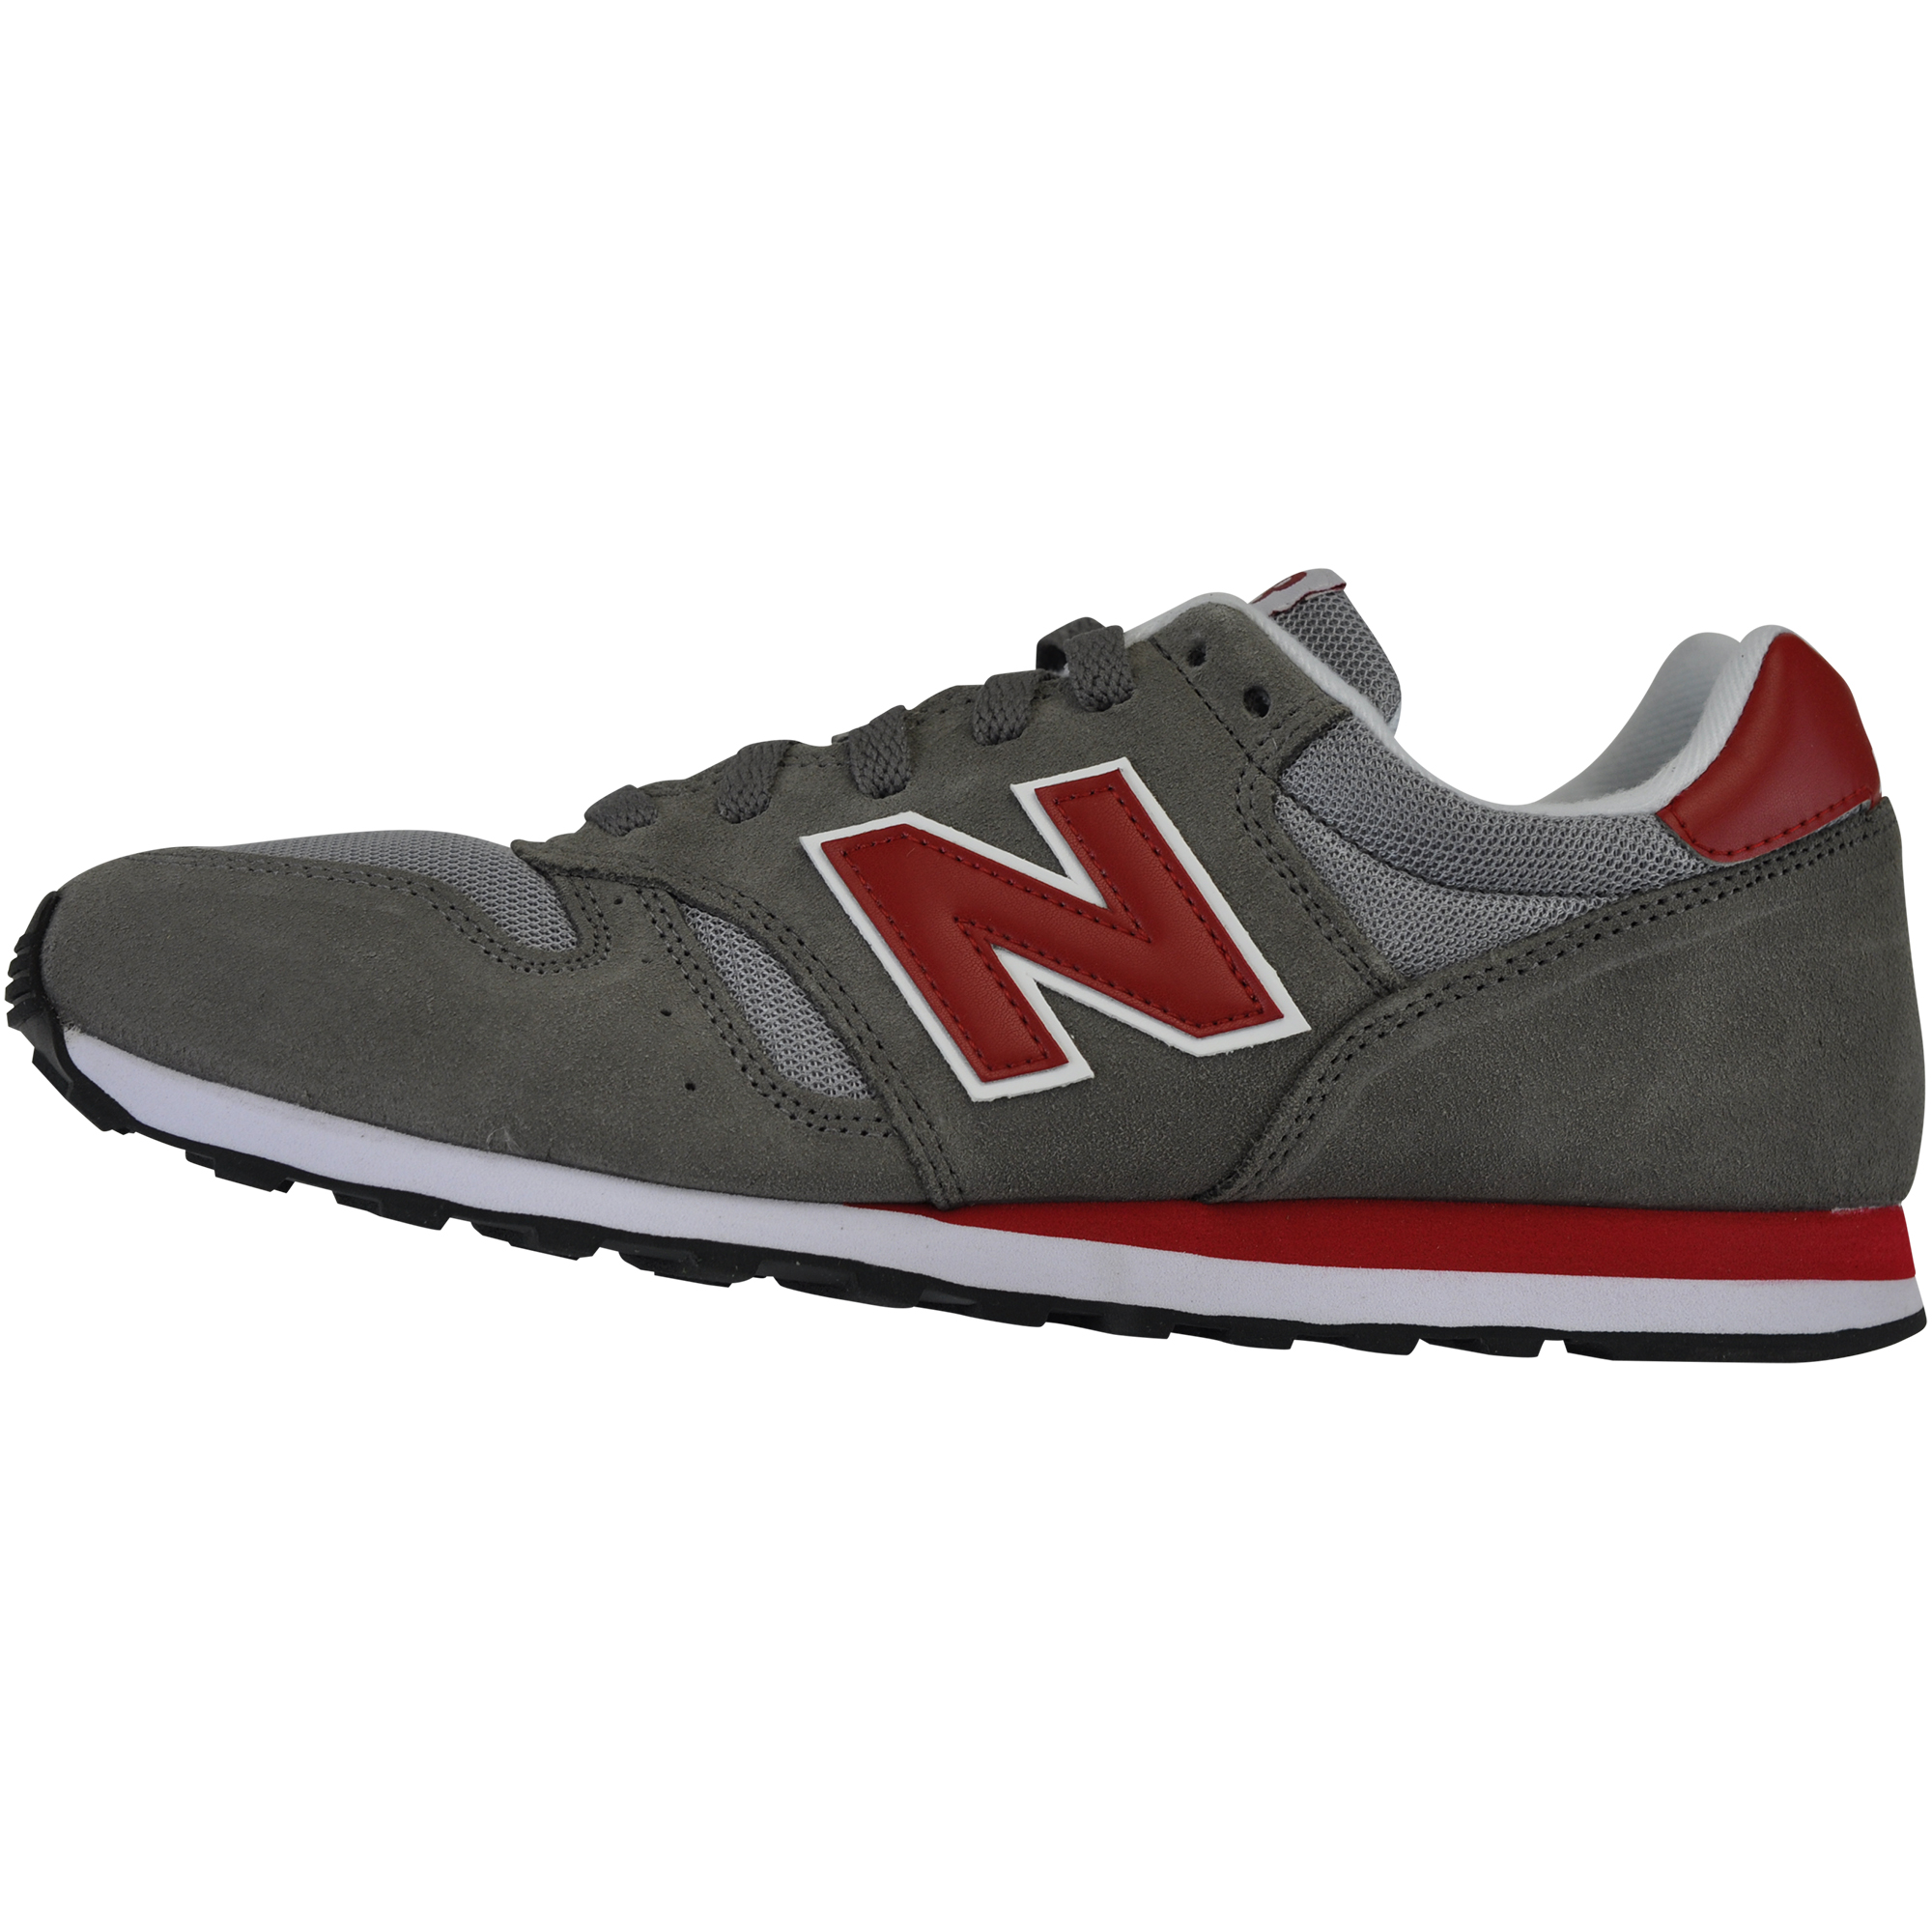 new balance ml574 m574 m373 u 446 410 576 577 wl574 herren frauen schuhe sneaker ebay. Black Bedroom Furniture Sets. Home Design Ideas